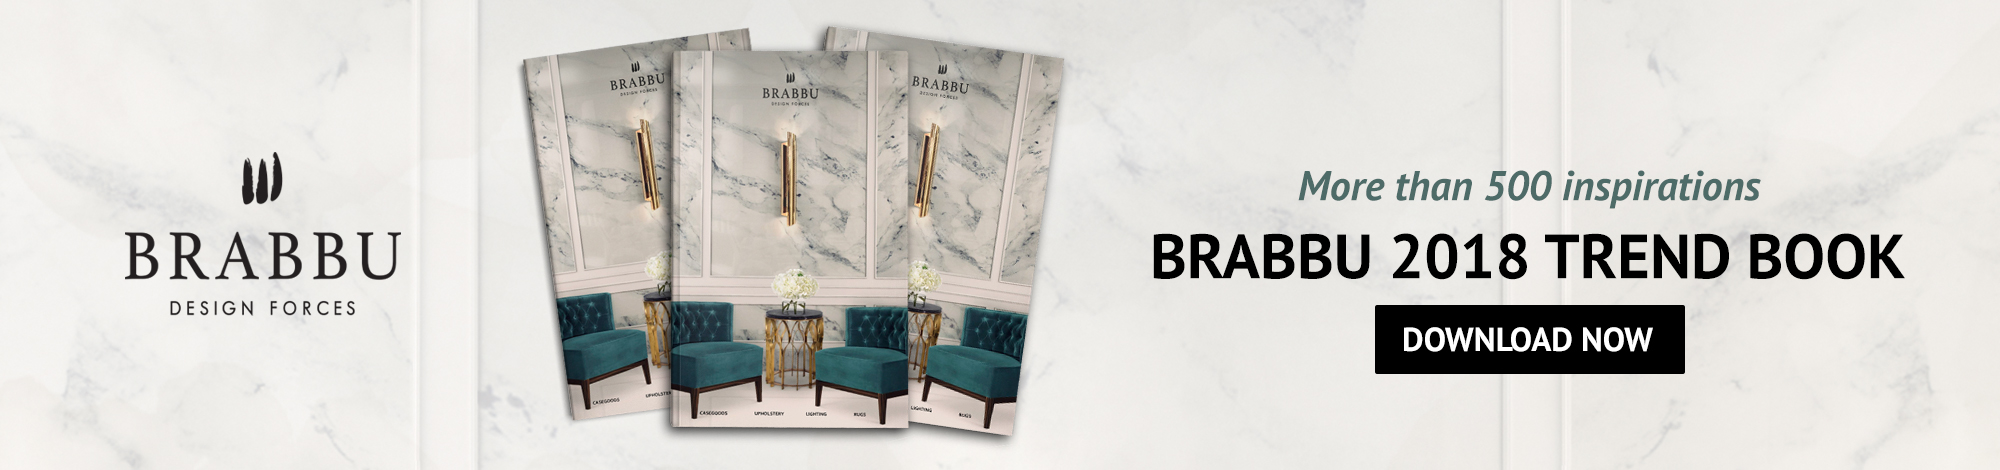 BRABBU Catalogue 2019 Color Trends The Best 2019 Color Trends For Your Next Home Decor Project!  1C5EB82328DCFD5BD10428DB124BD945082C079483CACCDD2D pimgpsh fullsize distr